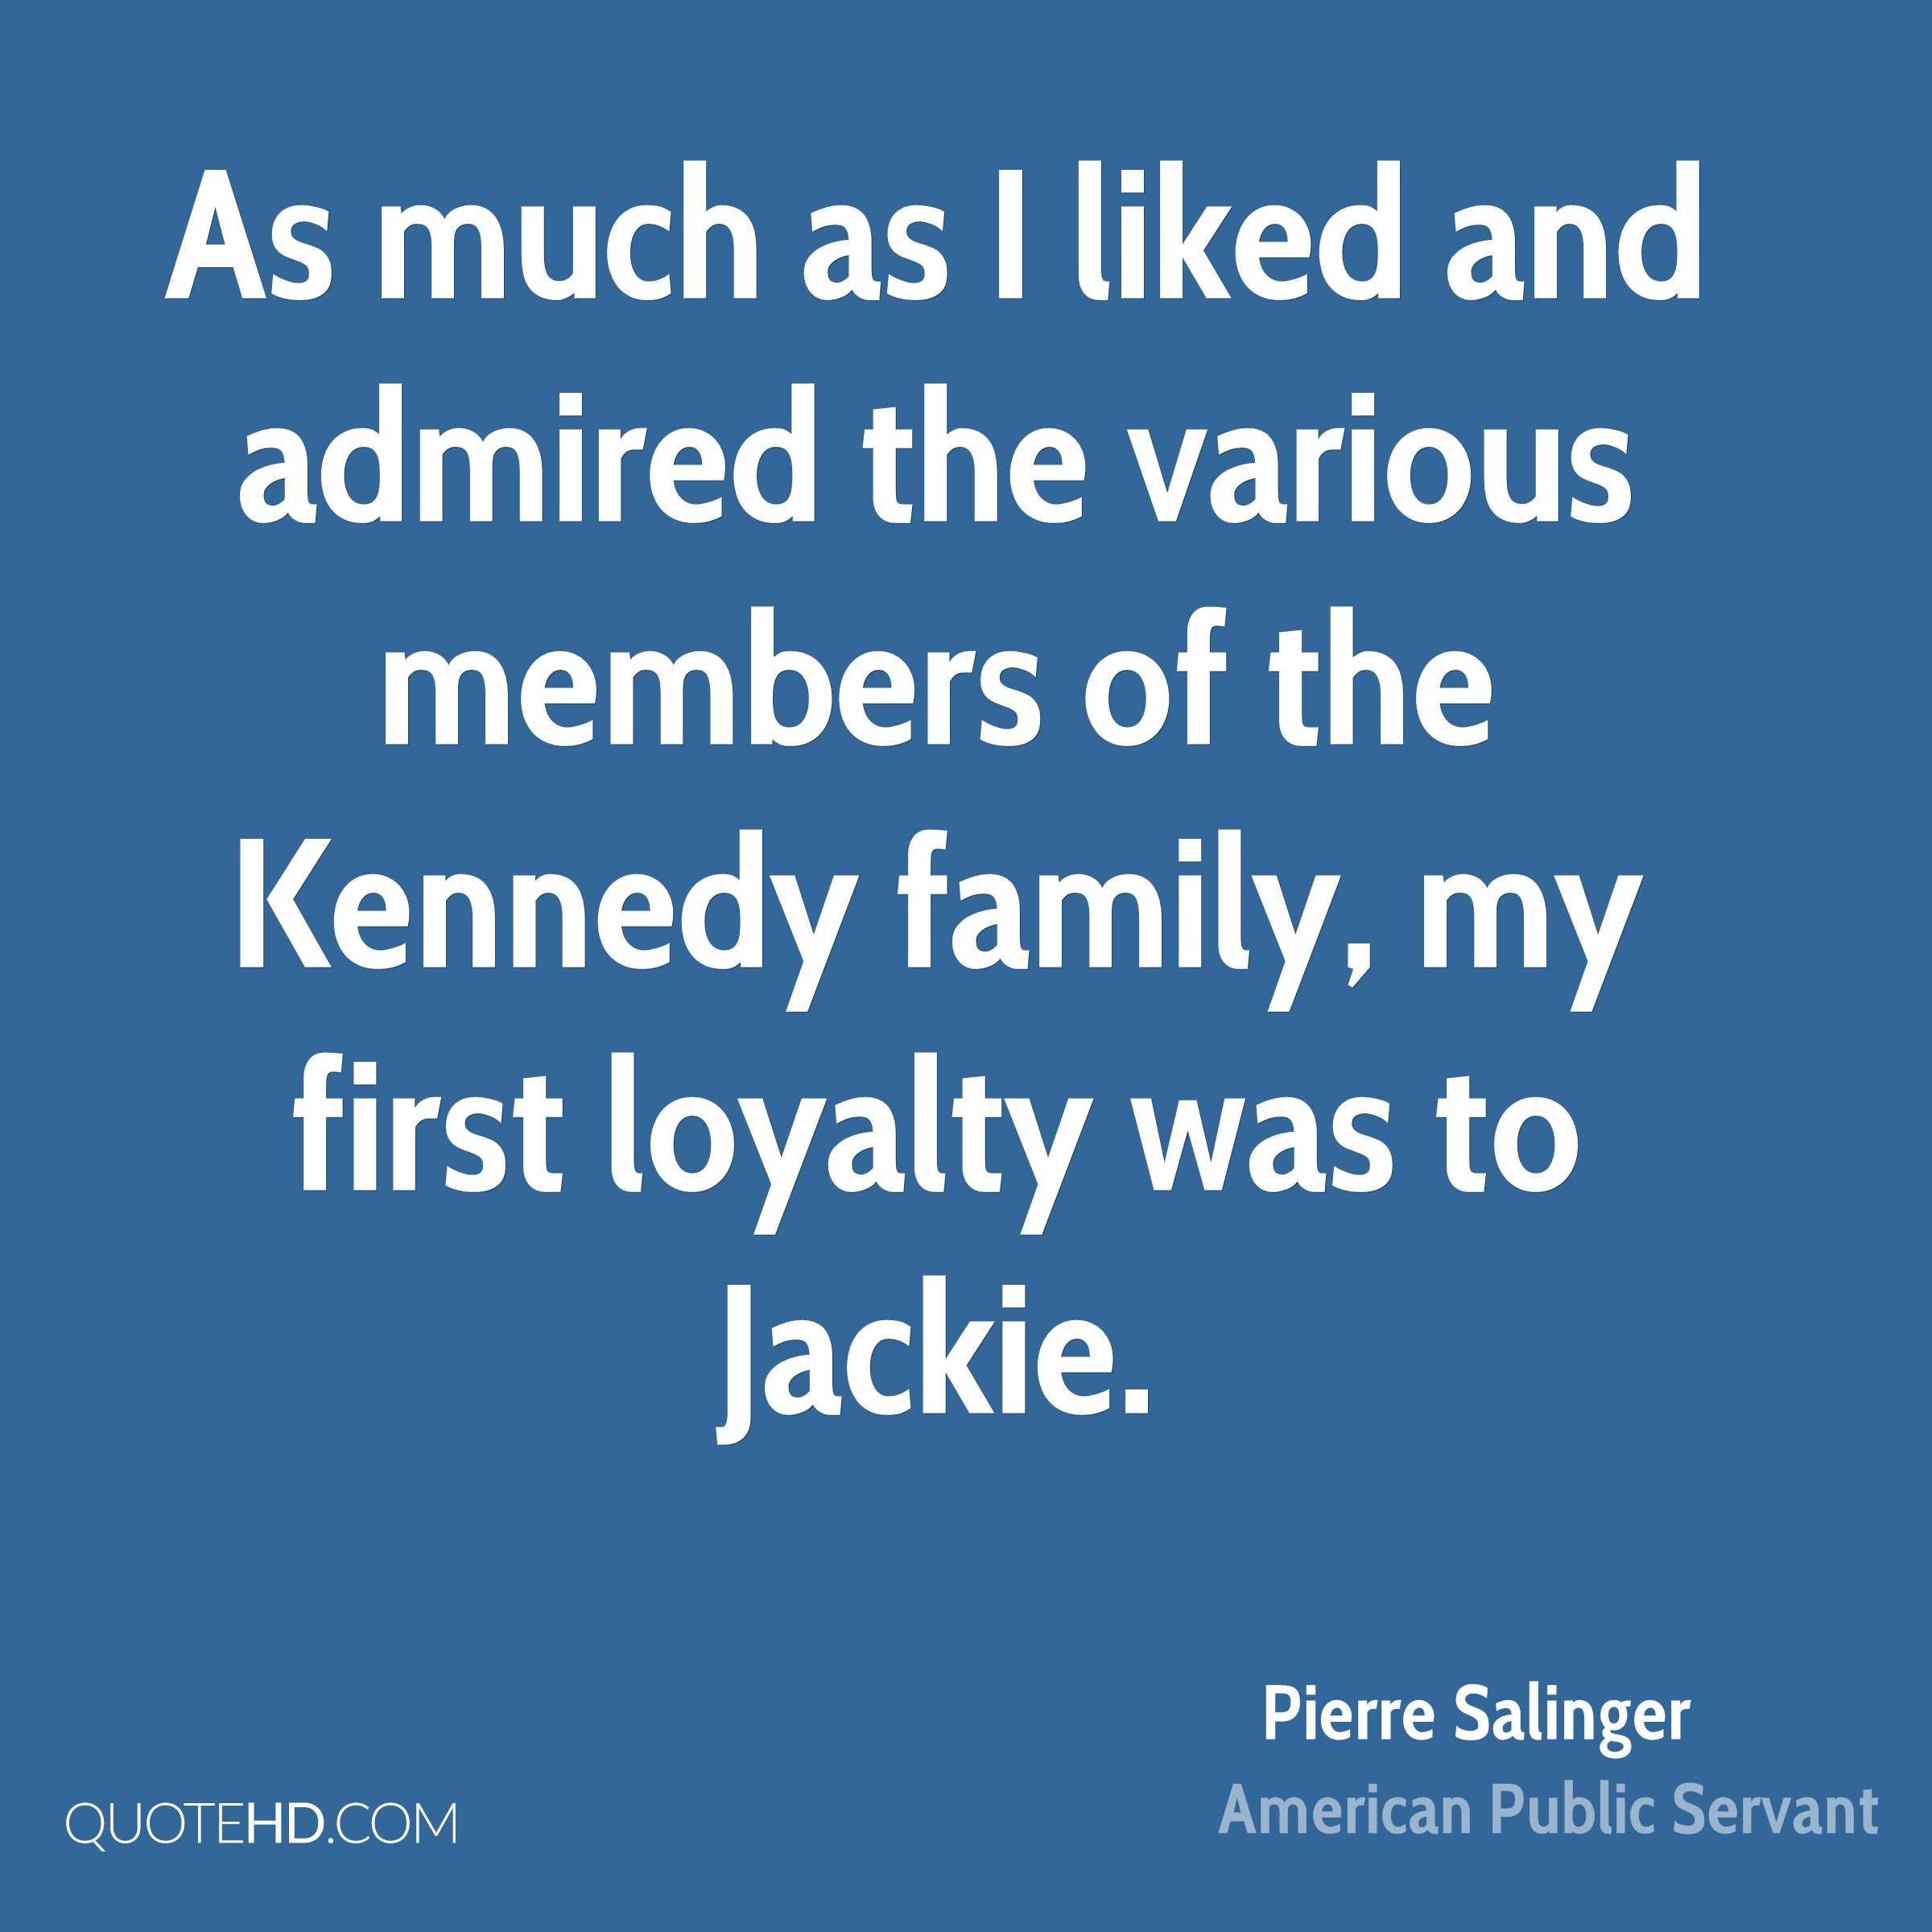 As much as I liked and admired the various members of the Kennedy family, my first loyalty was to Jackie.